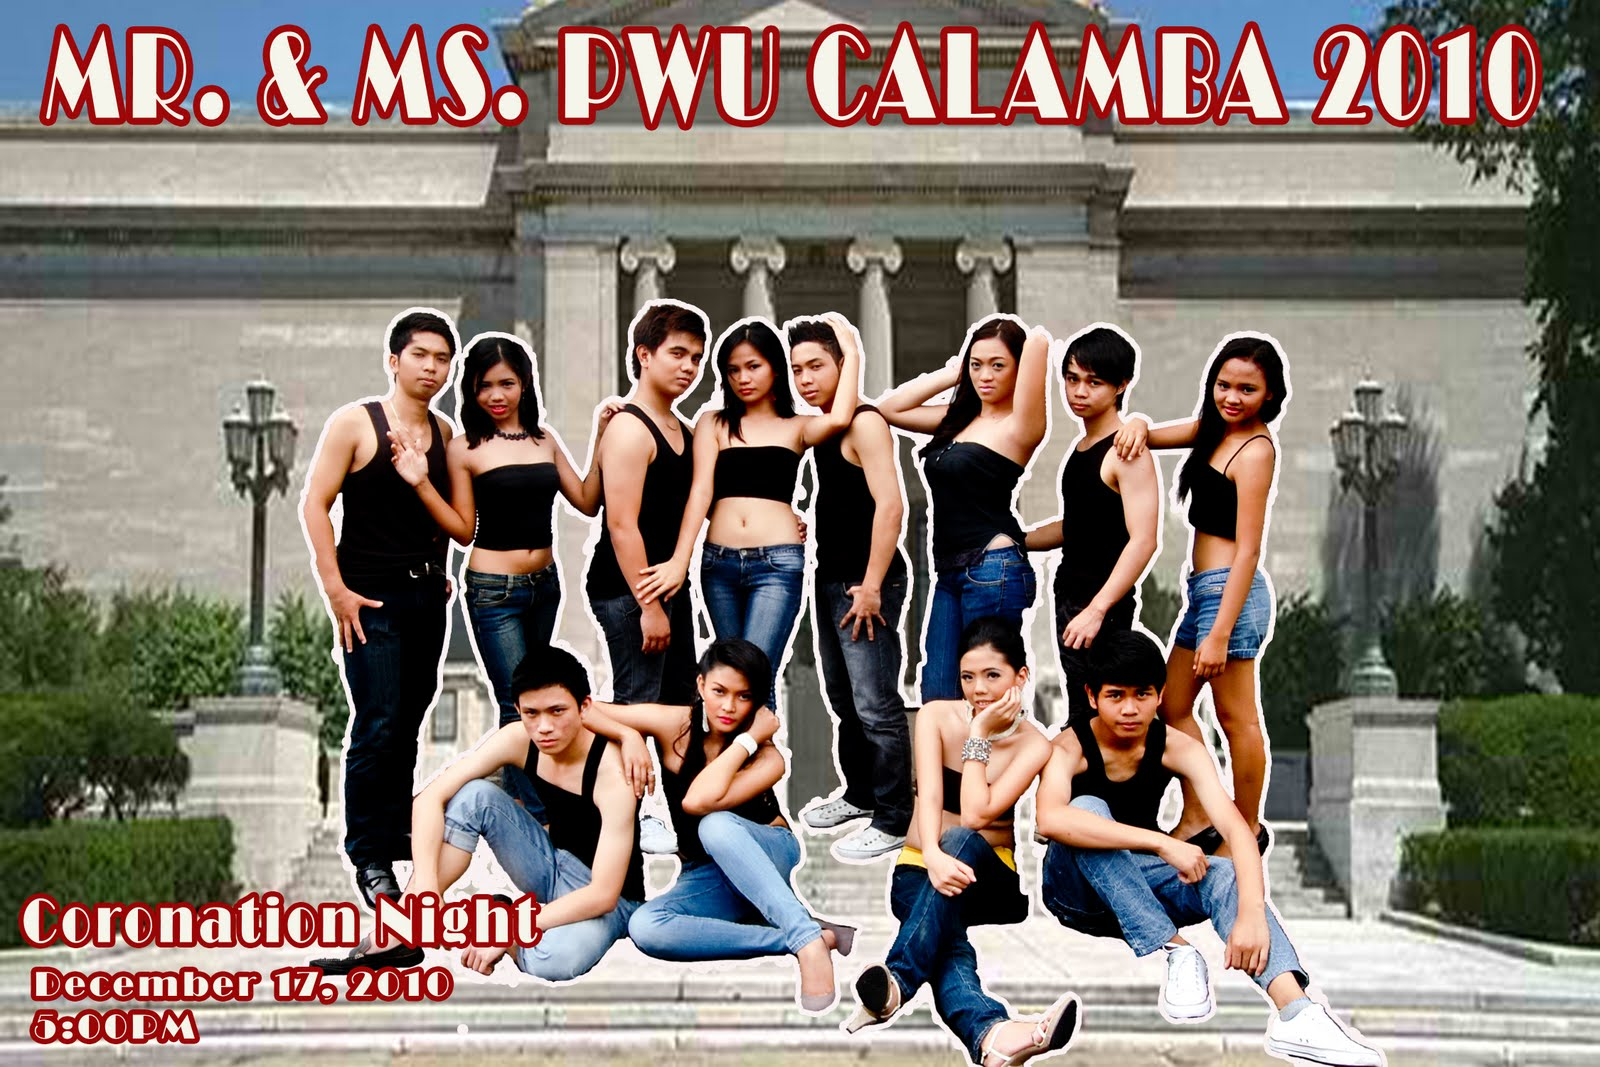 Candidates for Mr. and Ms. PWU Calamba 2010